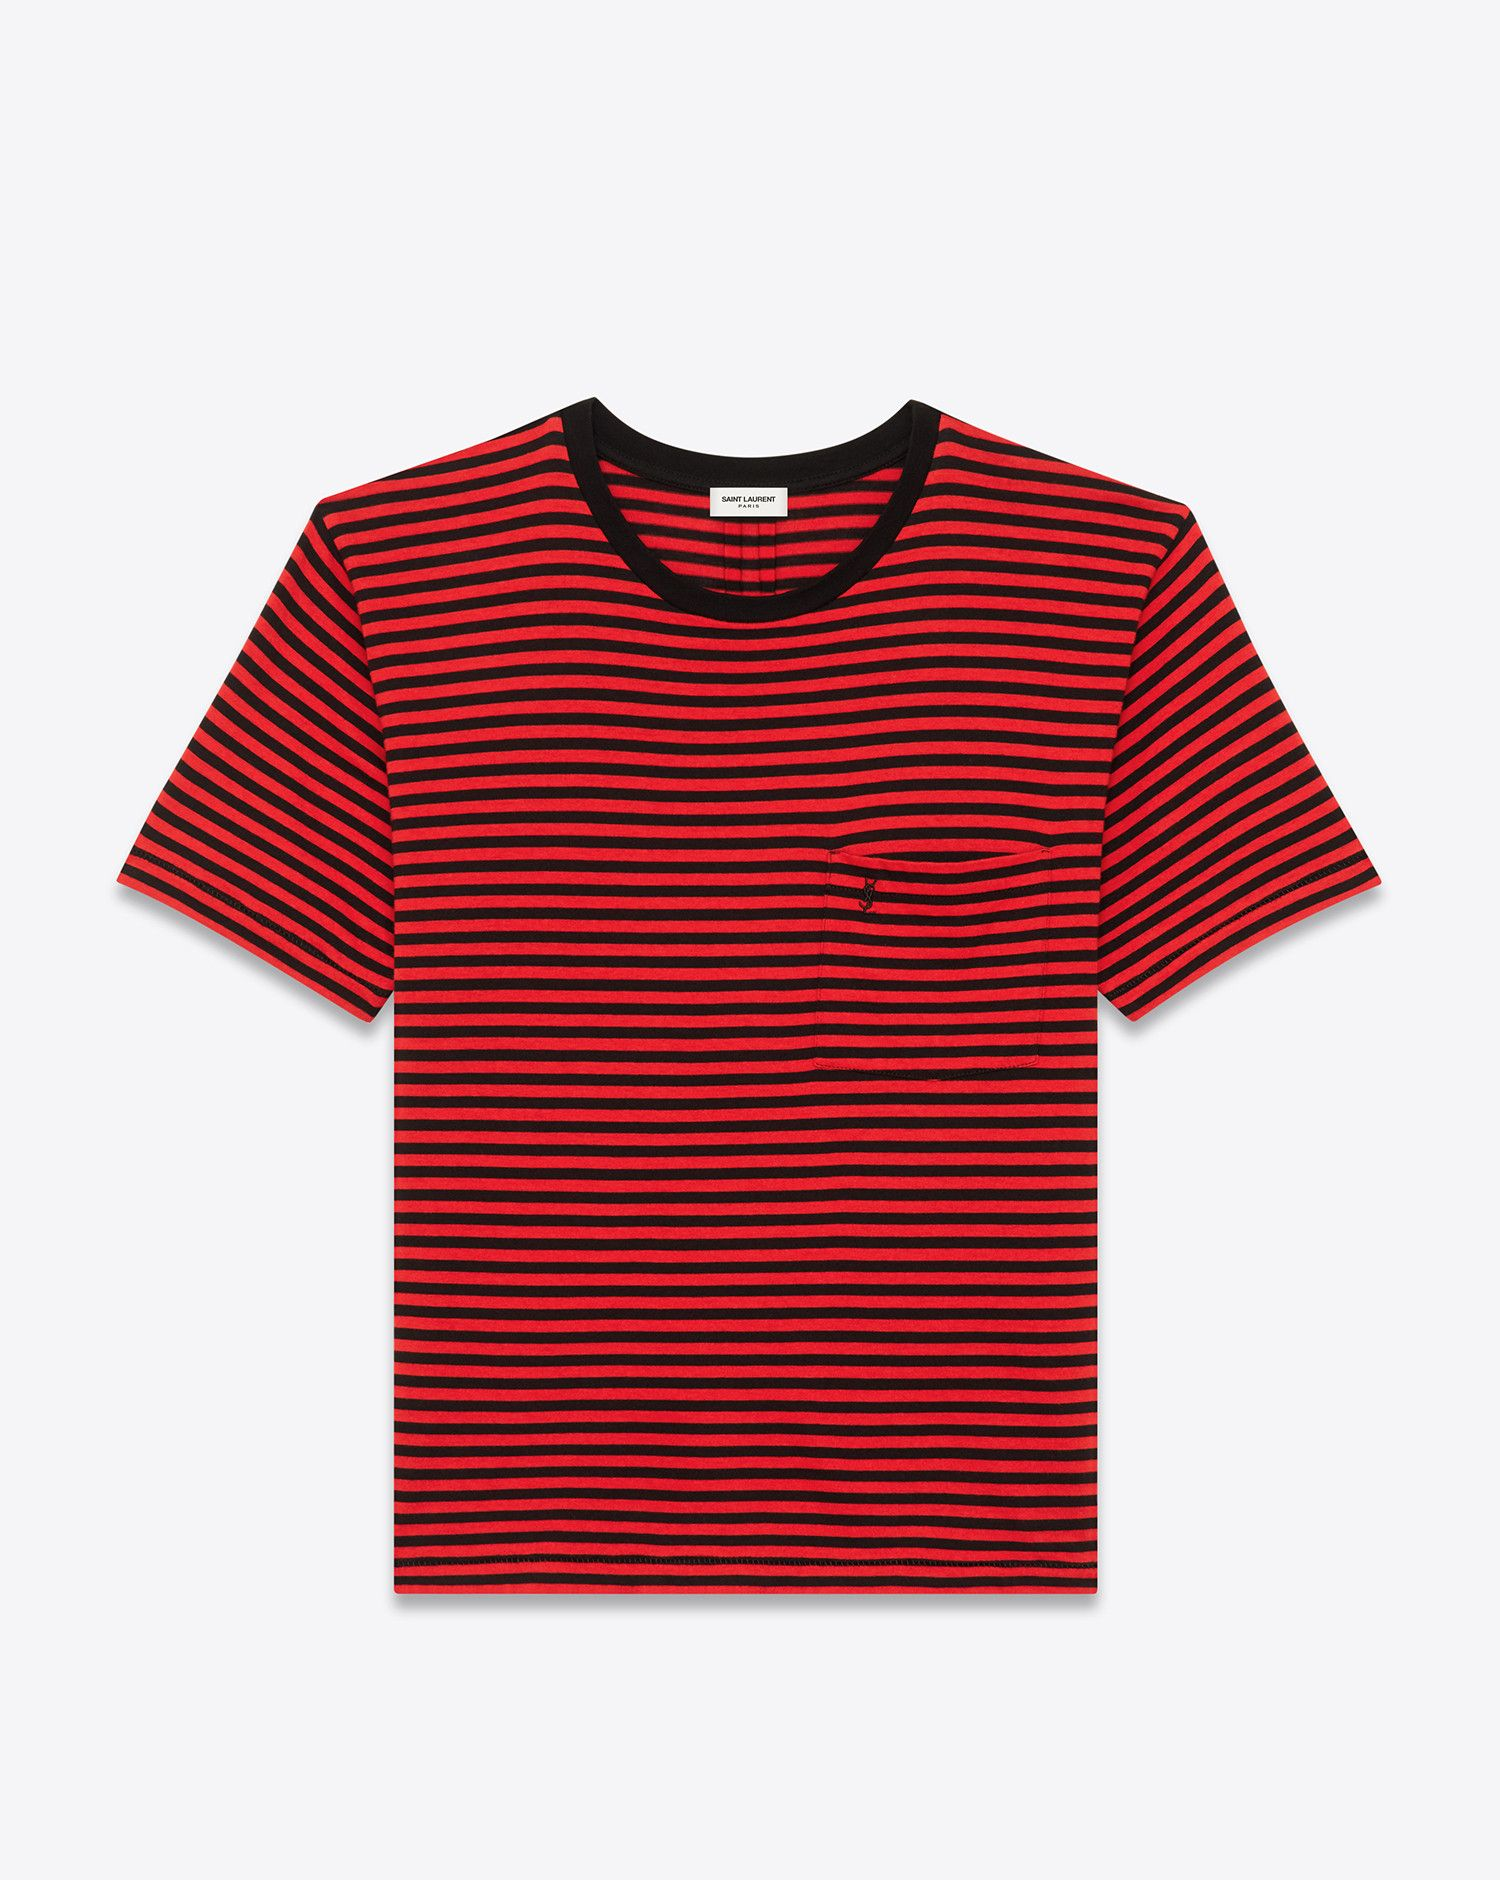 d7f51aaaf68e Saint Laurent YSL Short Sleeve T Shirt In Black And Red Striped Cotton  Jersey 290 EUR.